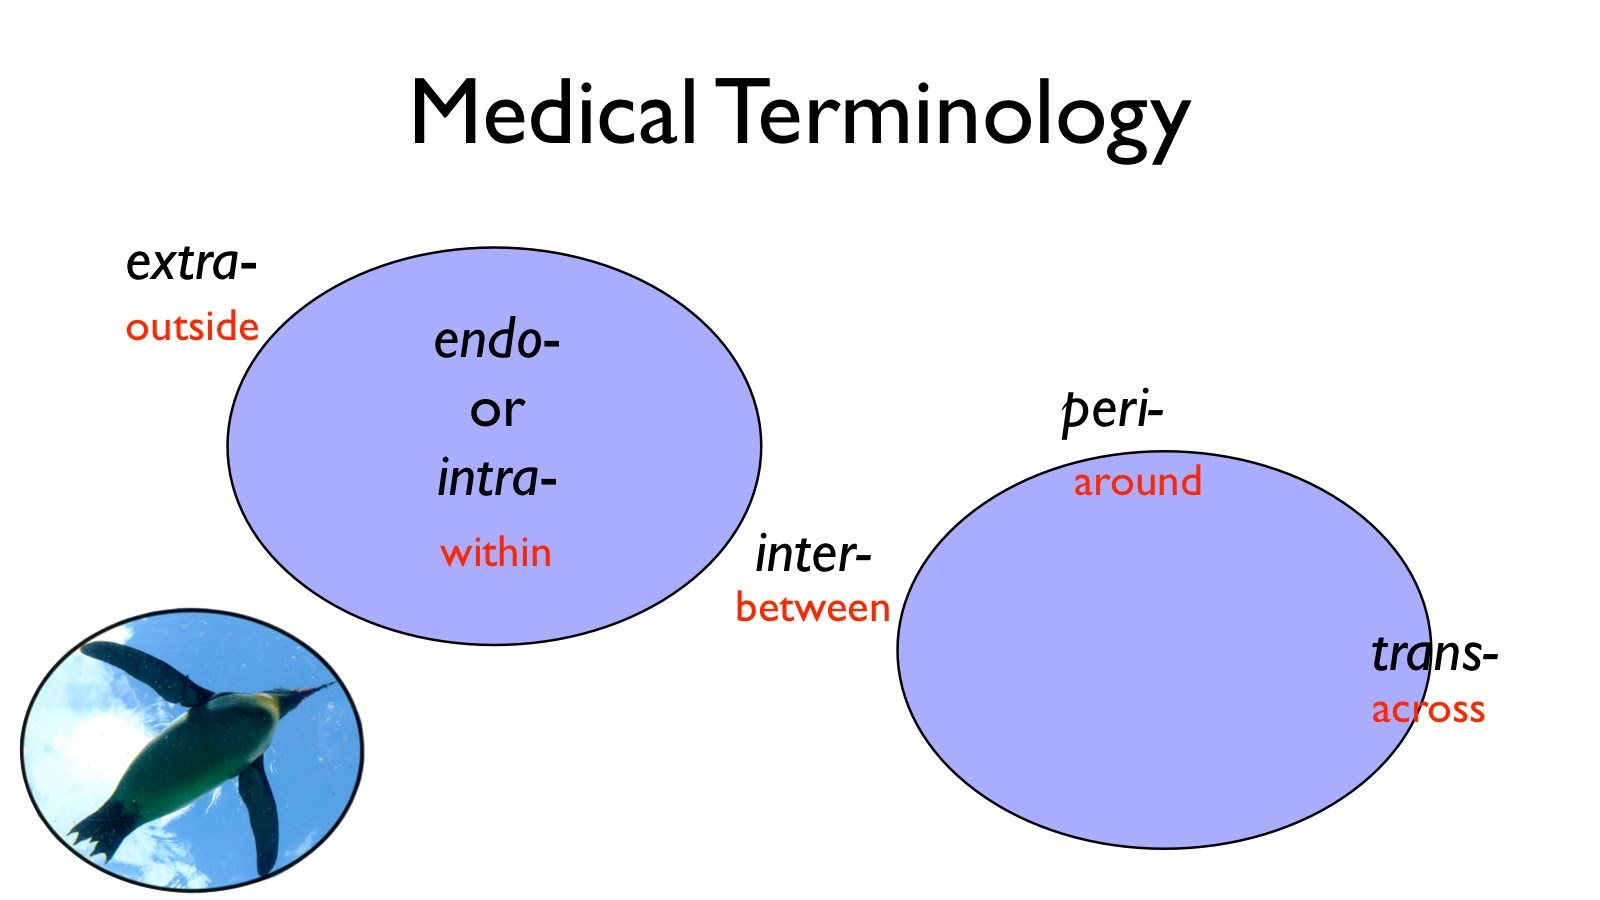 Medical Terminology: A Word Association Approach (Fall 2018)